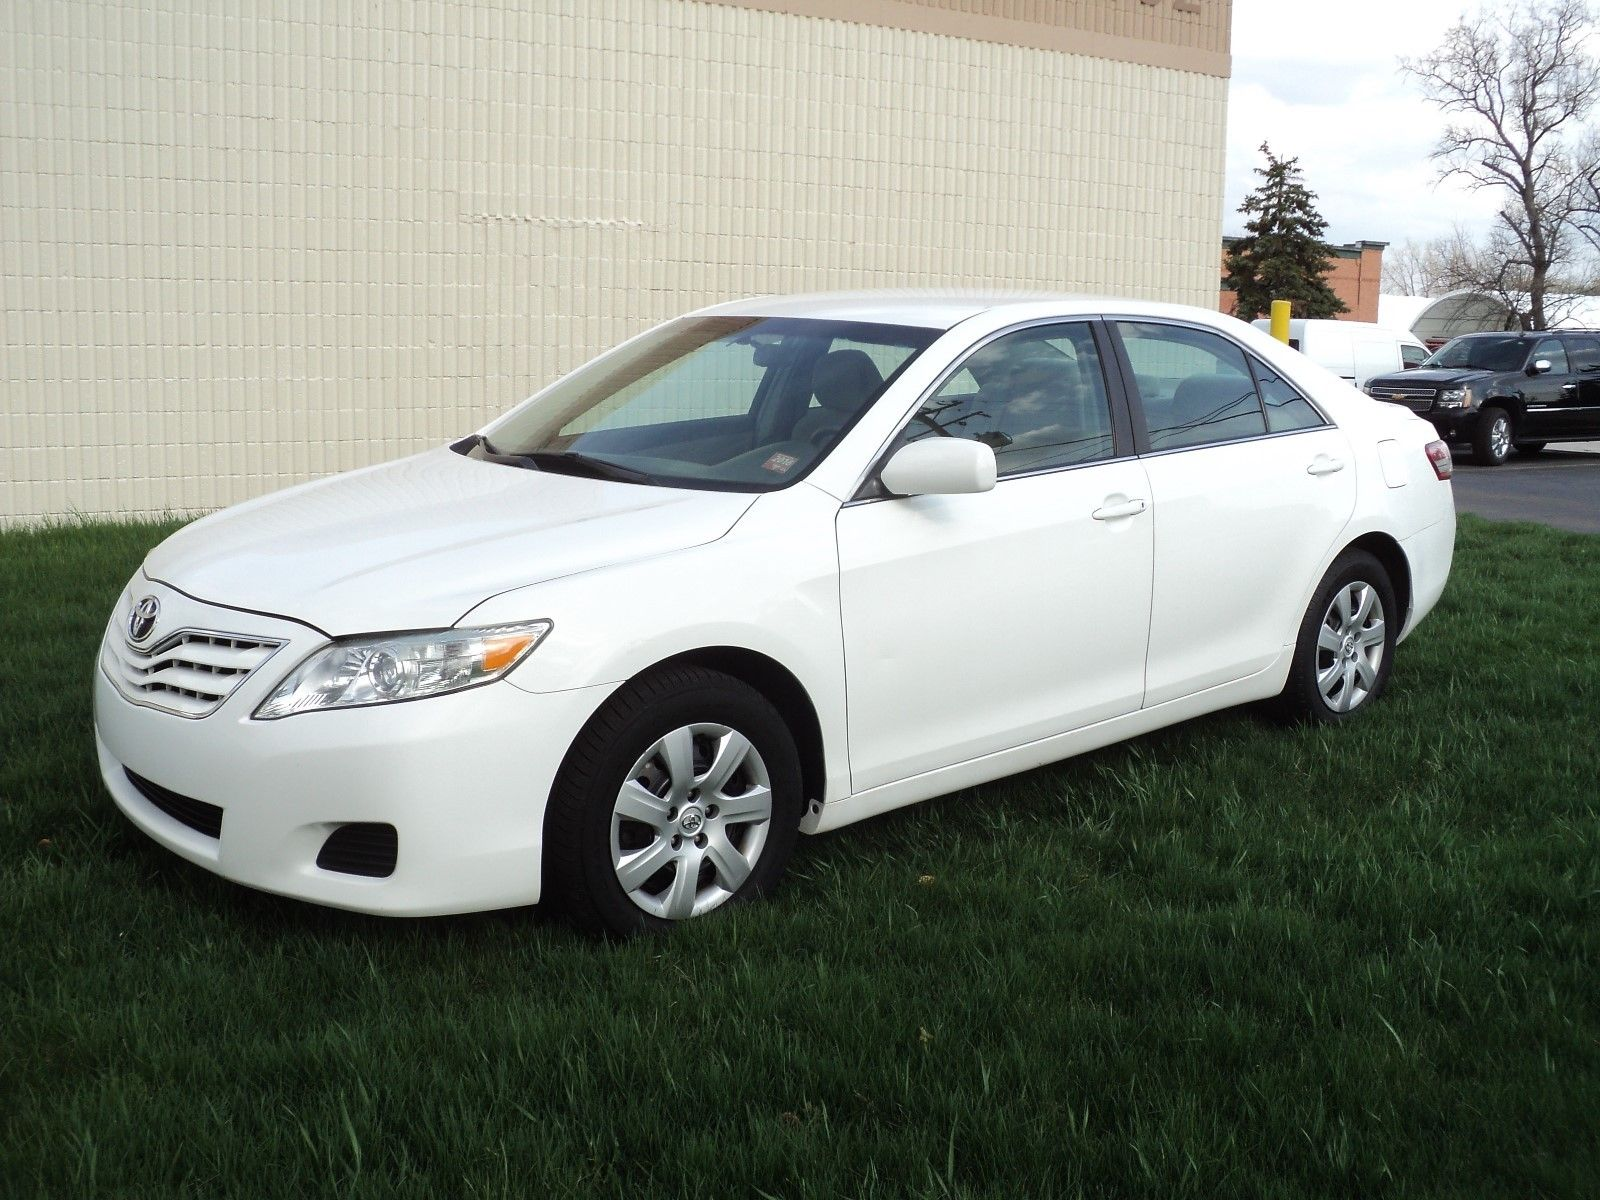 Toyota Camry 2010 2.4 L 4 cylinders